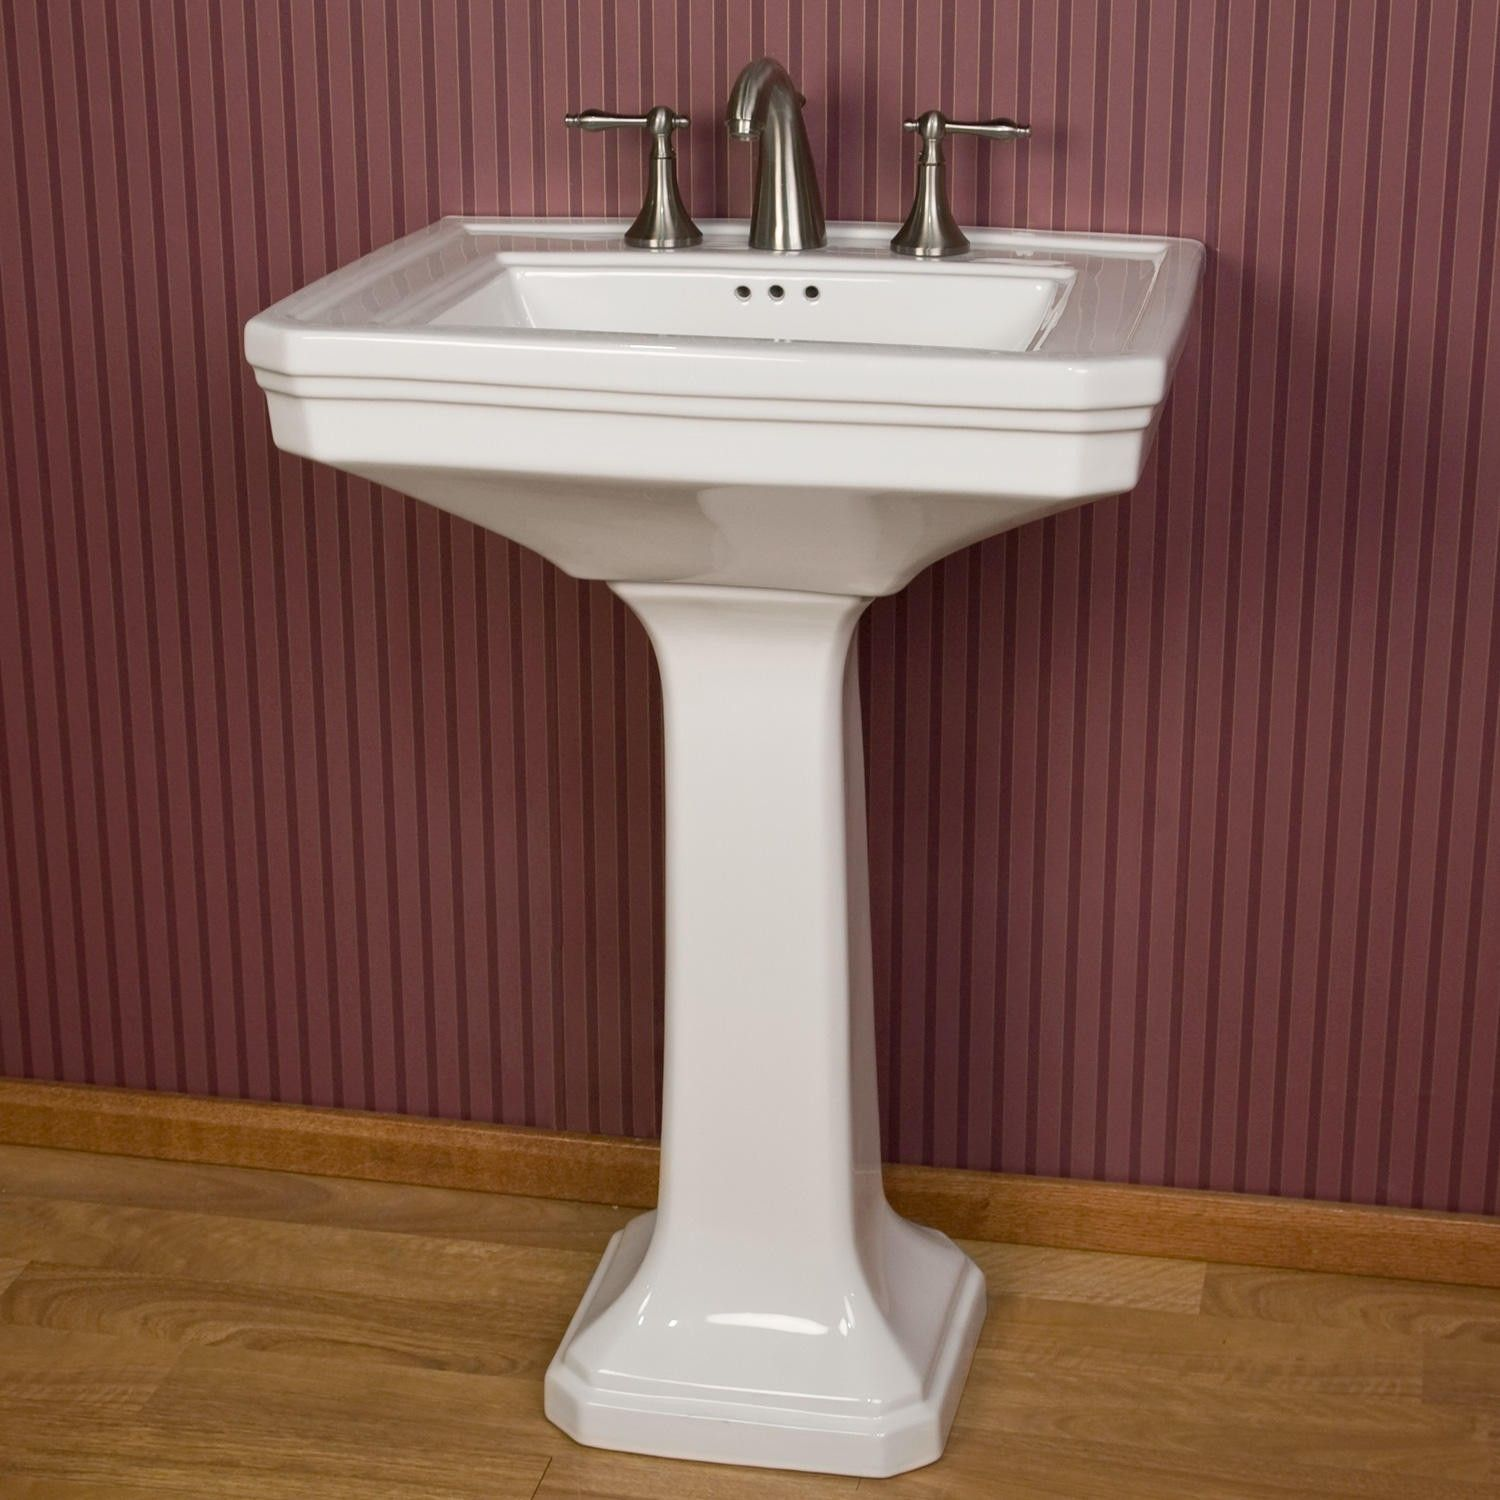 large reviews sink mount modern fixtures faucet bathroom full wall with sinks stand basin small cheap vintage bowls and pedestal of american in trough images vanity lavatory best wonderful corner vessel size narrow top vanities storage picks standard inch on simple